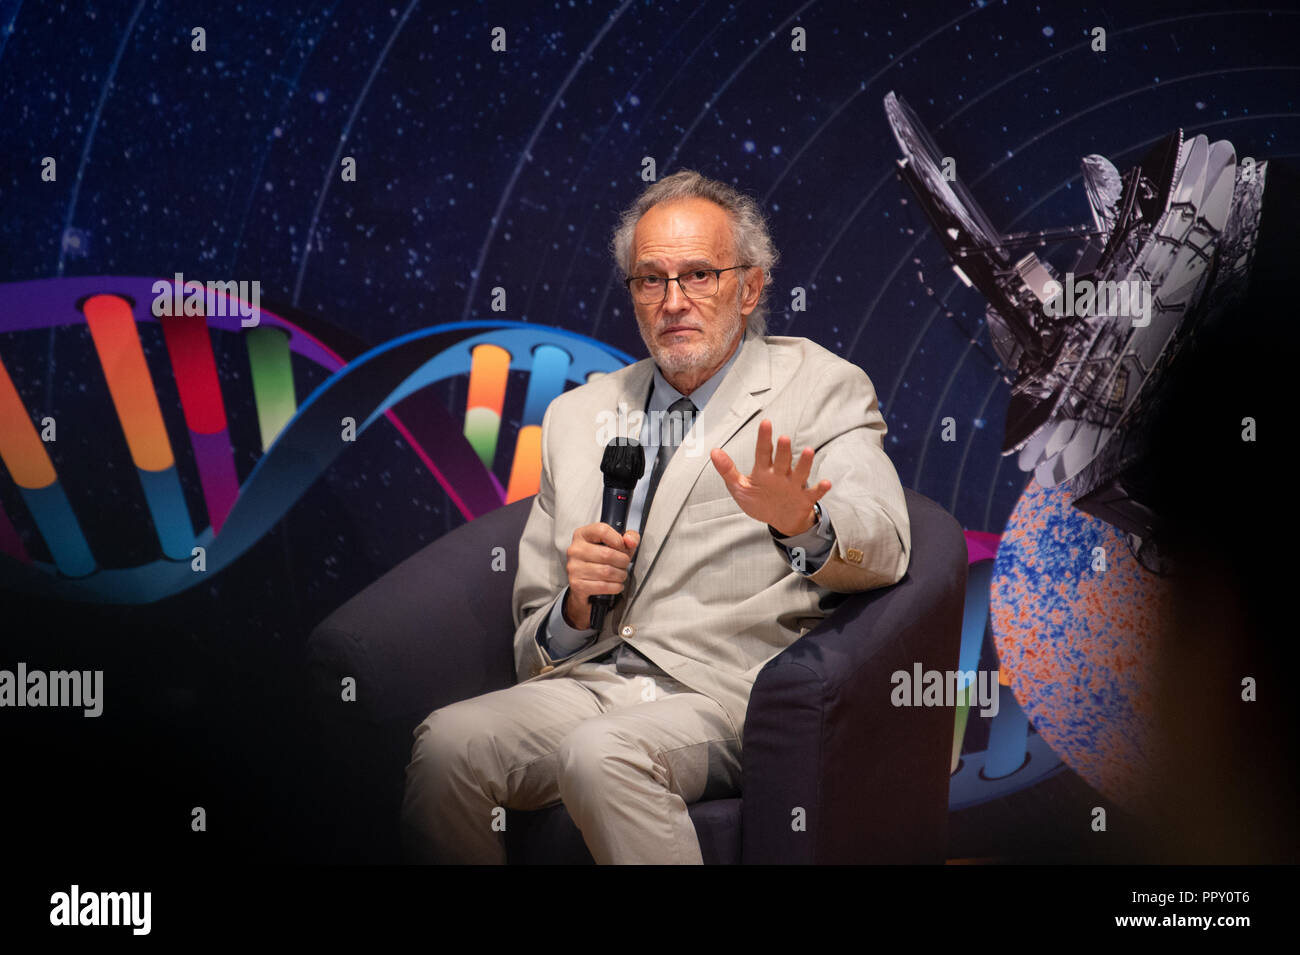 Hong Kong, . 28th Sep, 2018. Shaw Laureate in Astronomy .Dr Jean-Loup Puget (Researcher, Institut d'Astrophysique Spatiale of Centre National de la Recherche Scientifique and Université Paris-Saclay, France).2018 Shaw Laureates give a public lecture at the Hong Kong Science Museum, Tsim Sha Tsui, Kowloon. The Shaw Prize, which consists of three annual awards, namely the Prize in Astronomy, the Prize in Life Science and Medicine and the Prize in Mathematical Sciences is worth $1.2million USD to each winner. Credit: Jayne Russell/ZUMA Wire/Alamy Live News Stock Photo